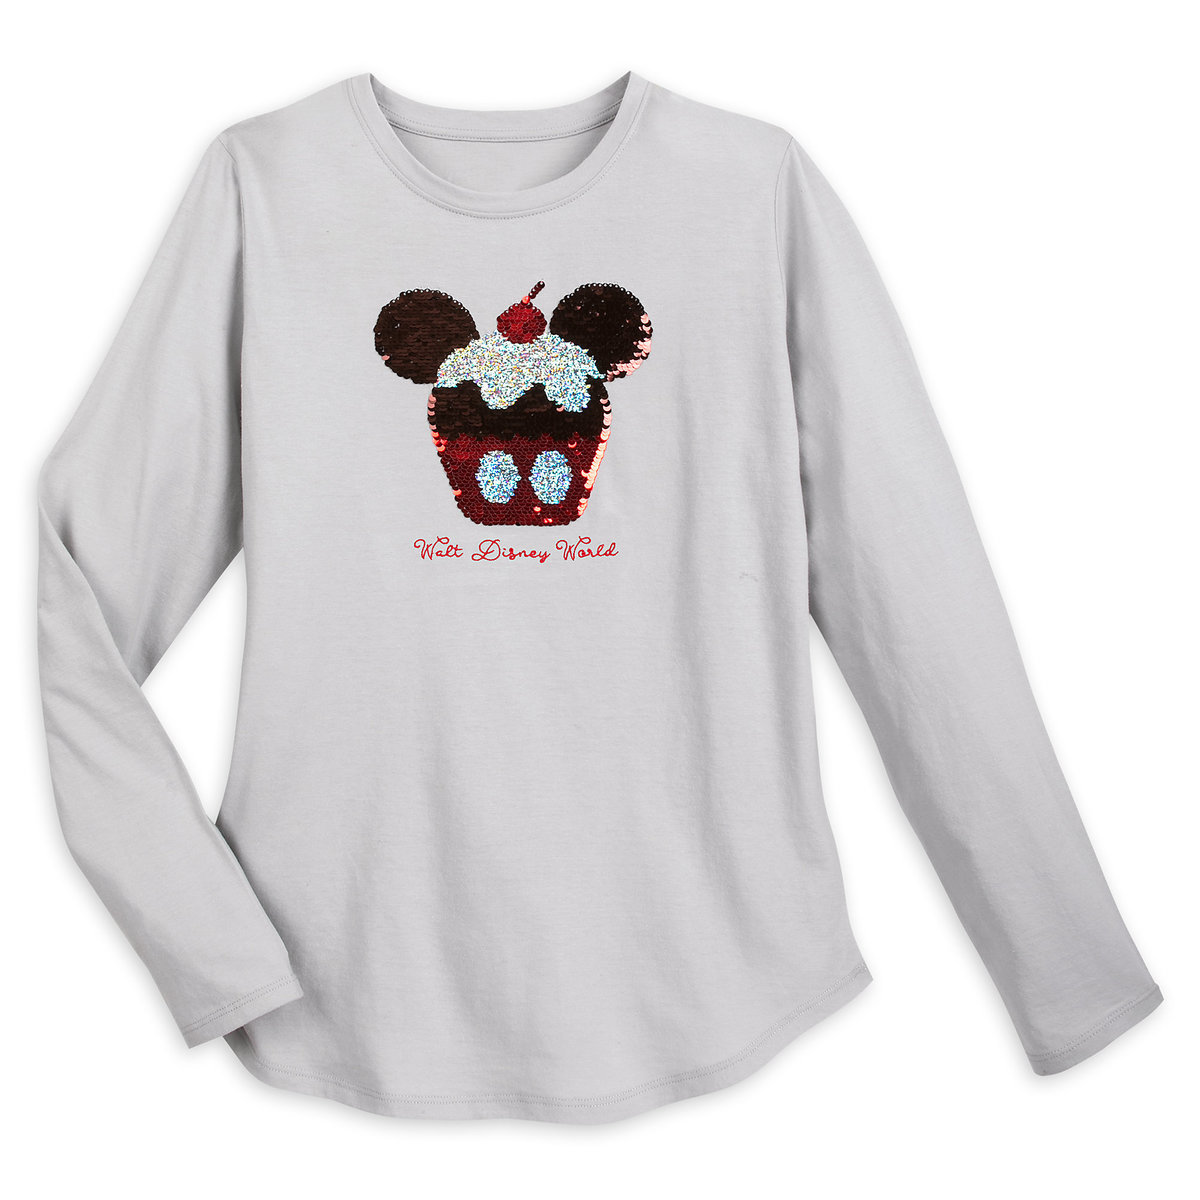 055009ec700e Product Image of Mickey Mouse Cupcake Reversible Sequin T-Shirt for Women -  Walt Disney